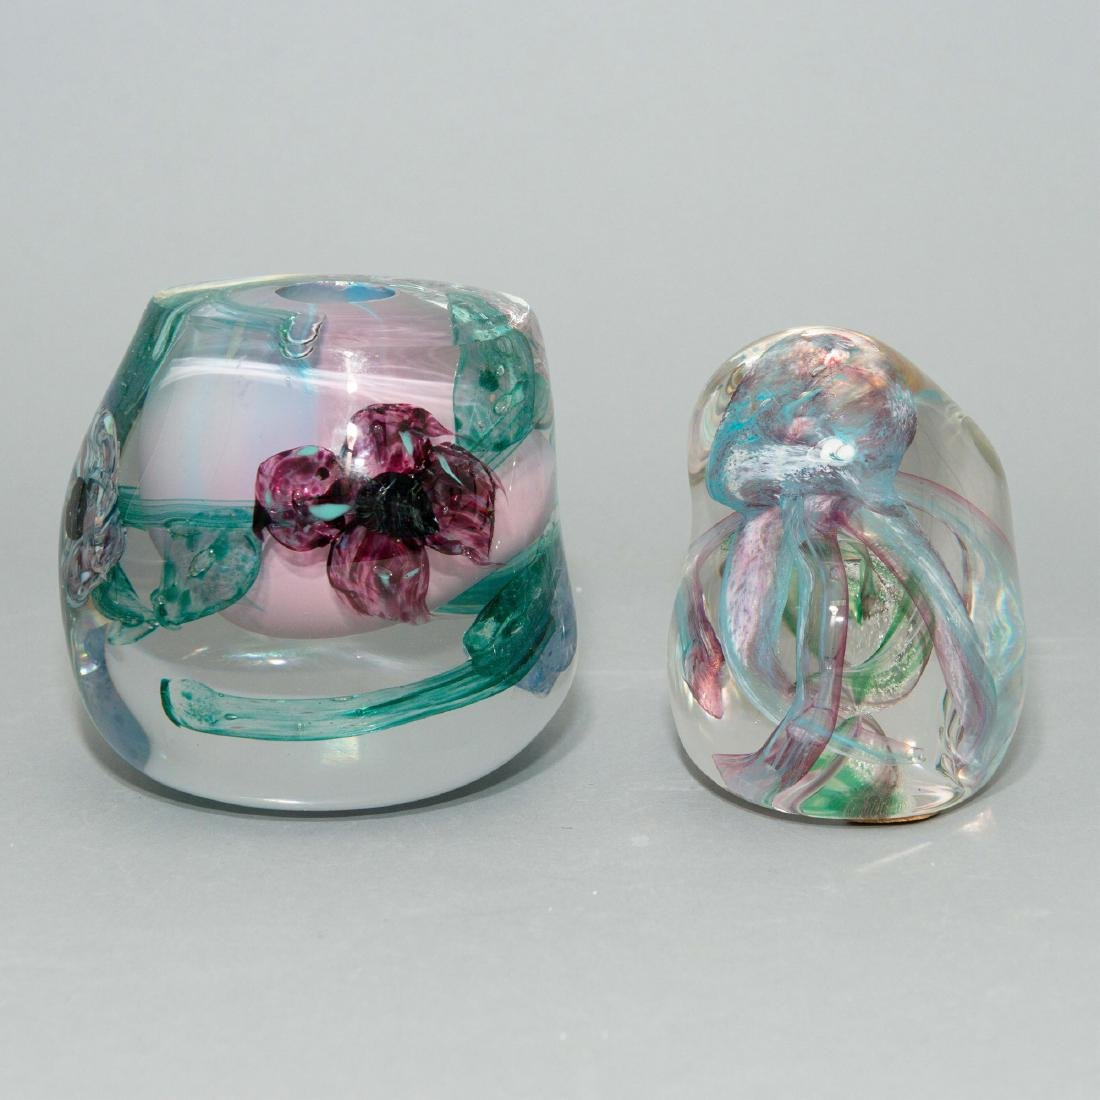 PAIR OF LISA LEYDON ART GLASS VASE AND SCULPTURE - 2